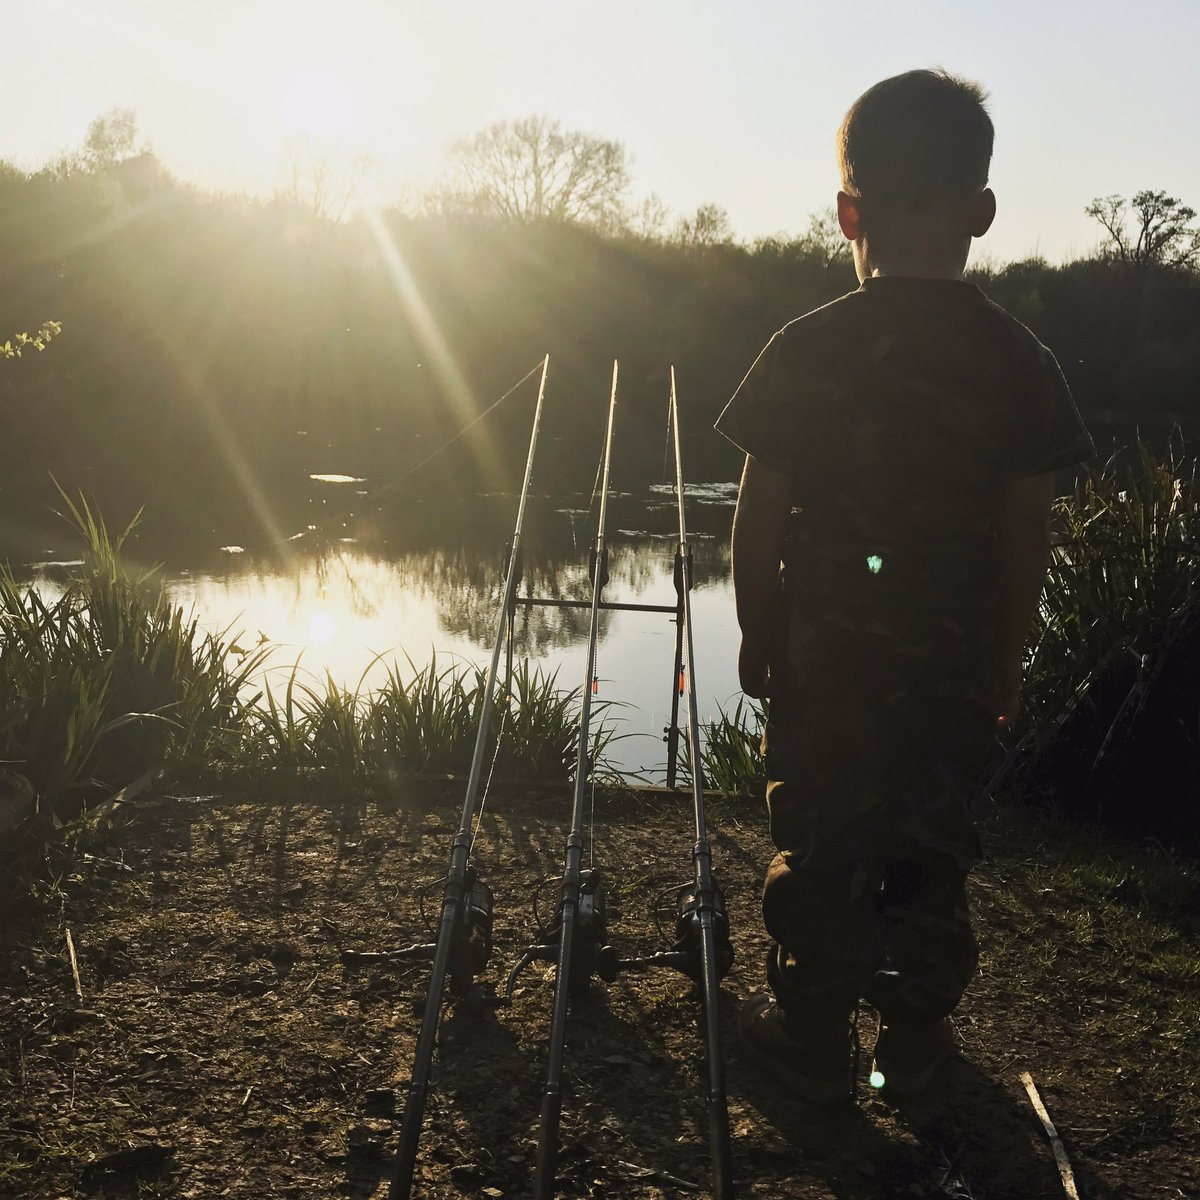 The youngest keeping watch, #CarpFishing #carphunter #activebaitsolutions #<b>Sunset</b> #kent https